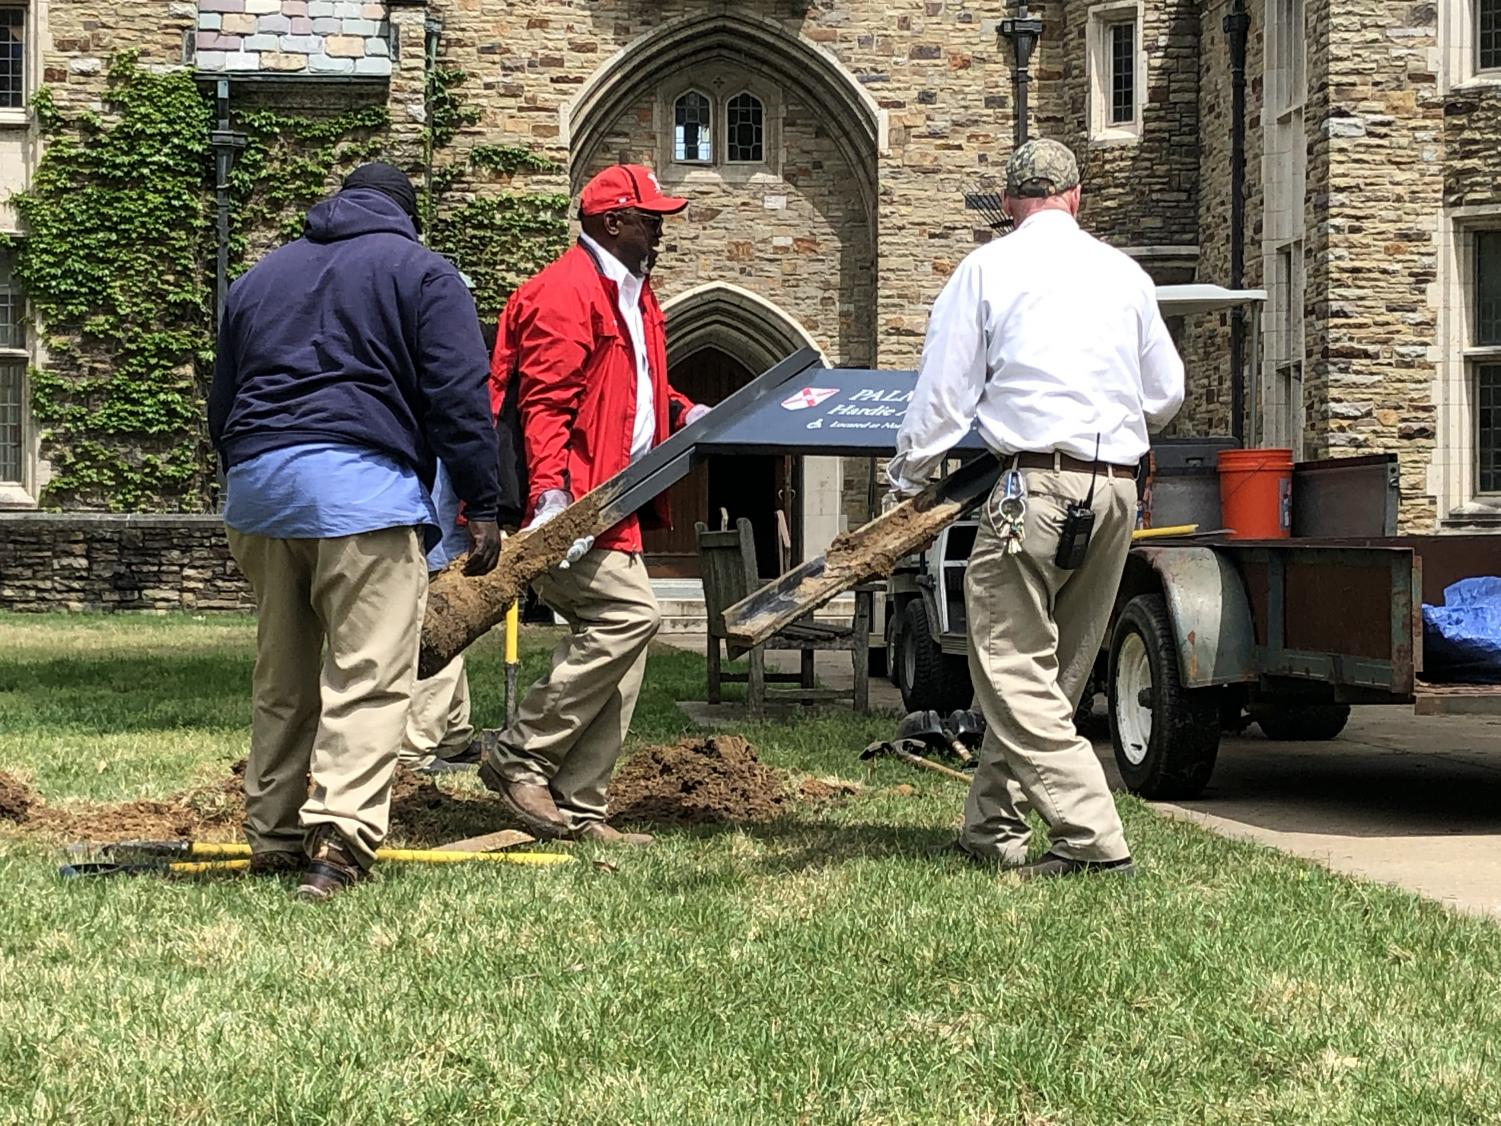 Physical Plant staff carry the Palmer Hall sign away while a small crowd observes in total silence.